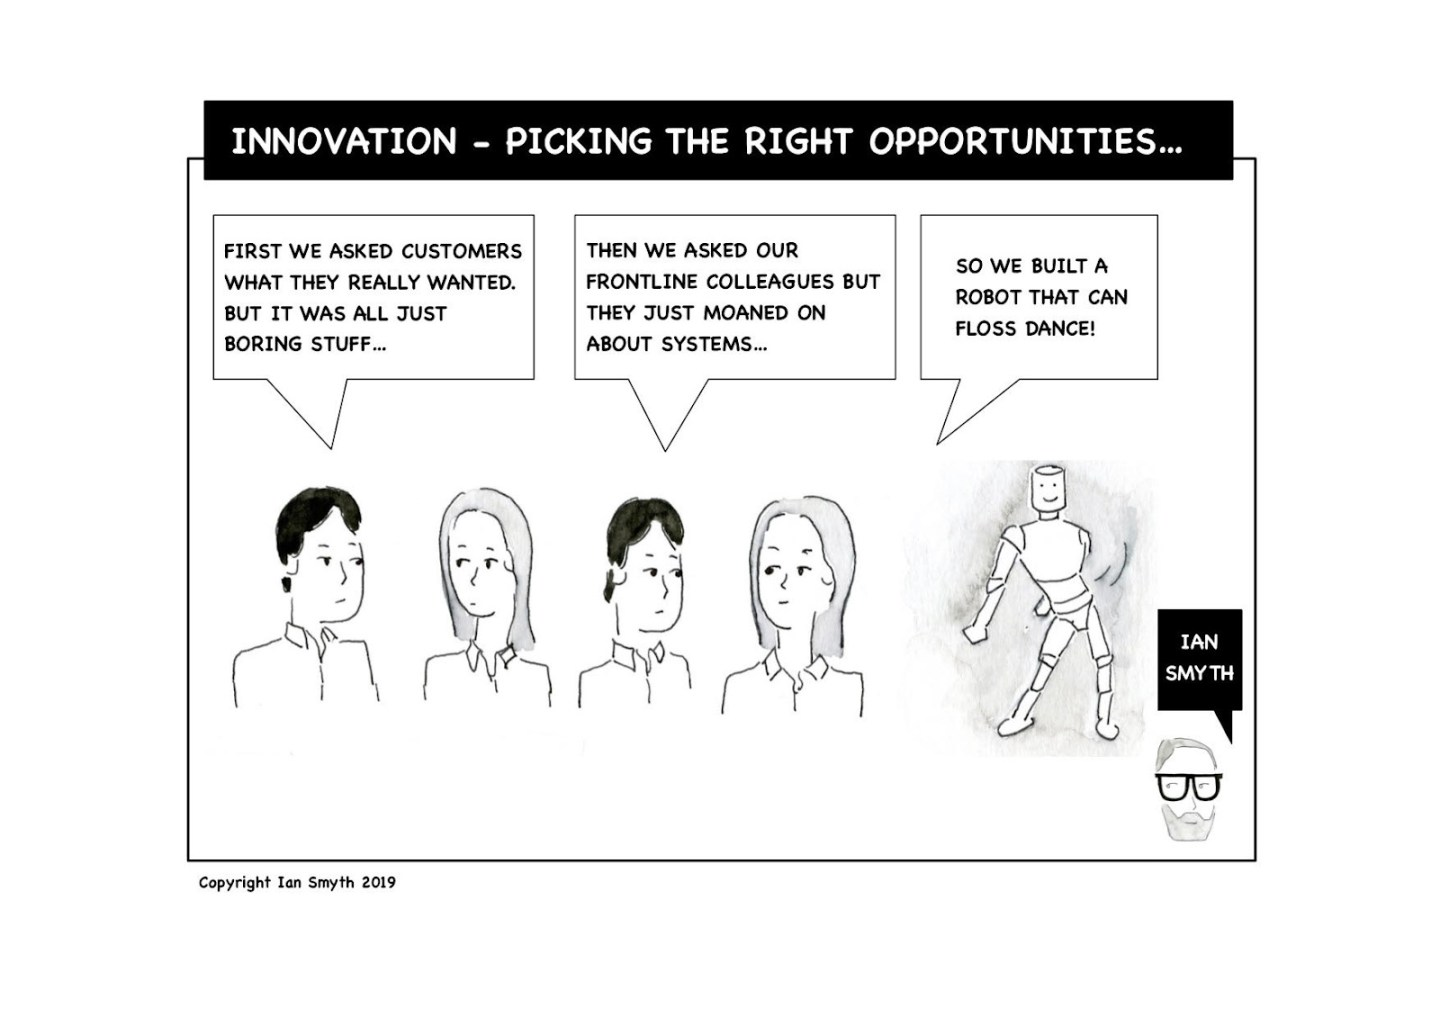 Getting rapid results from innovation